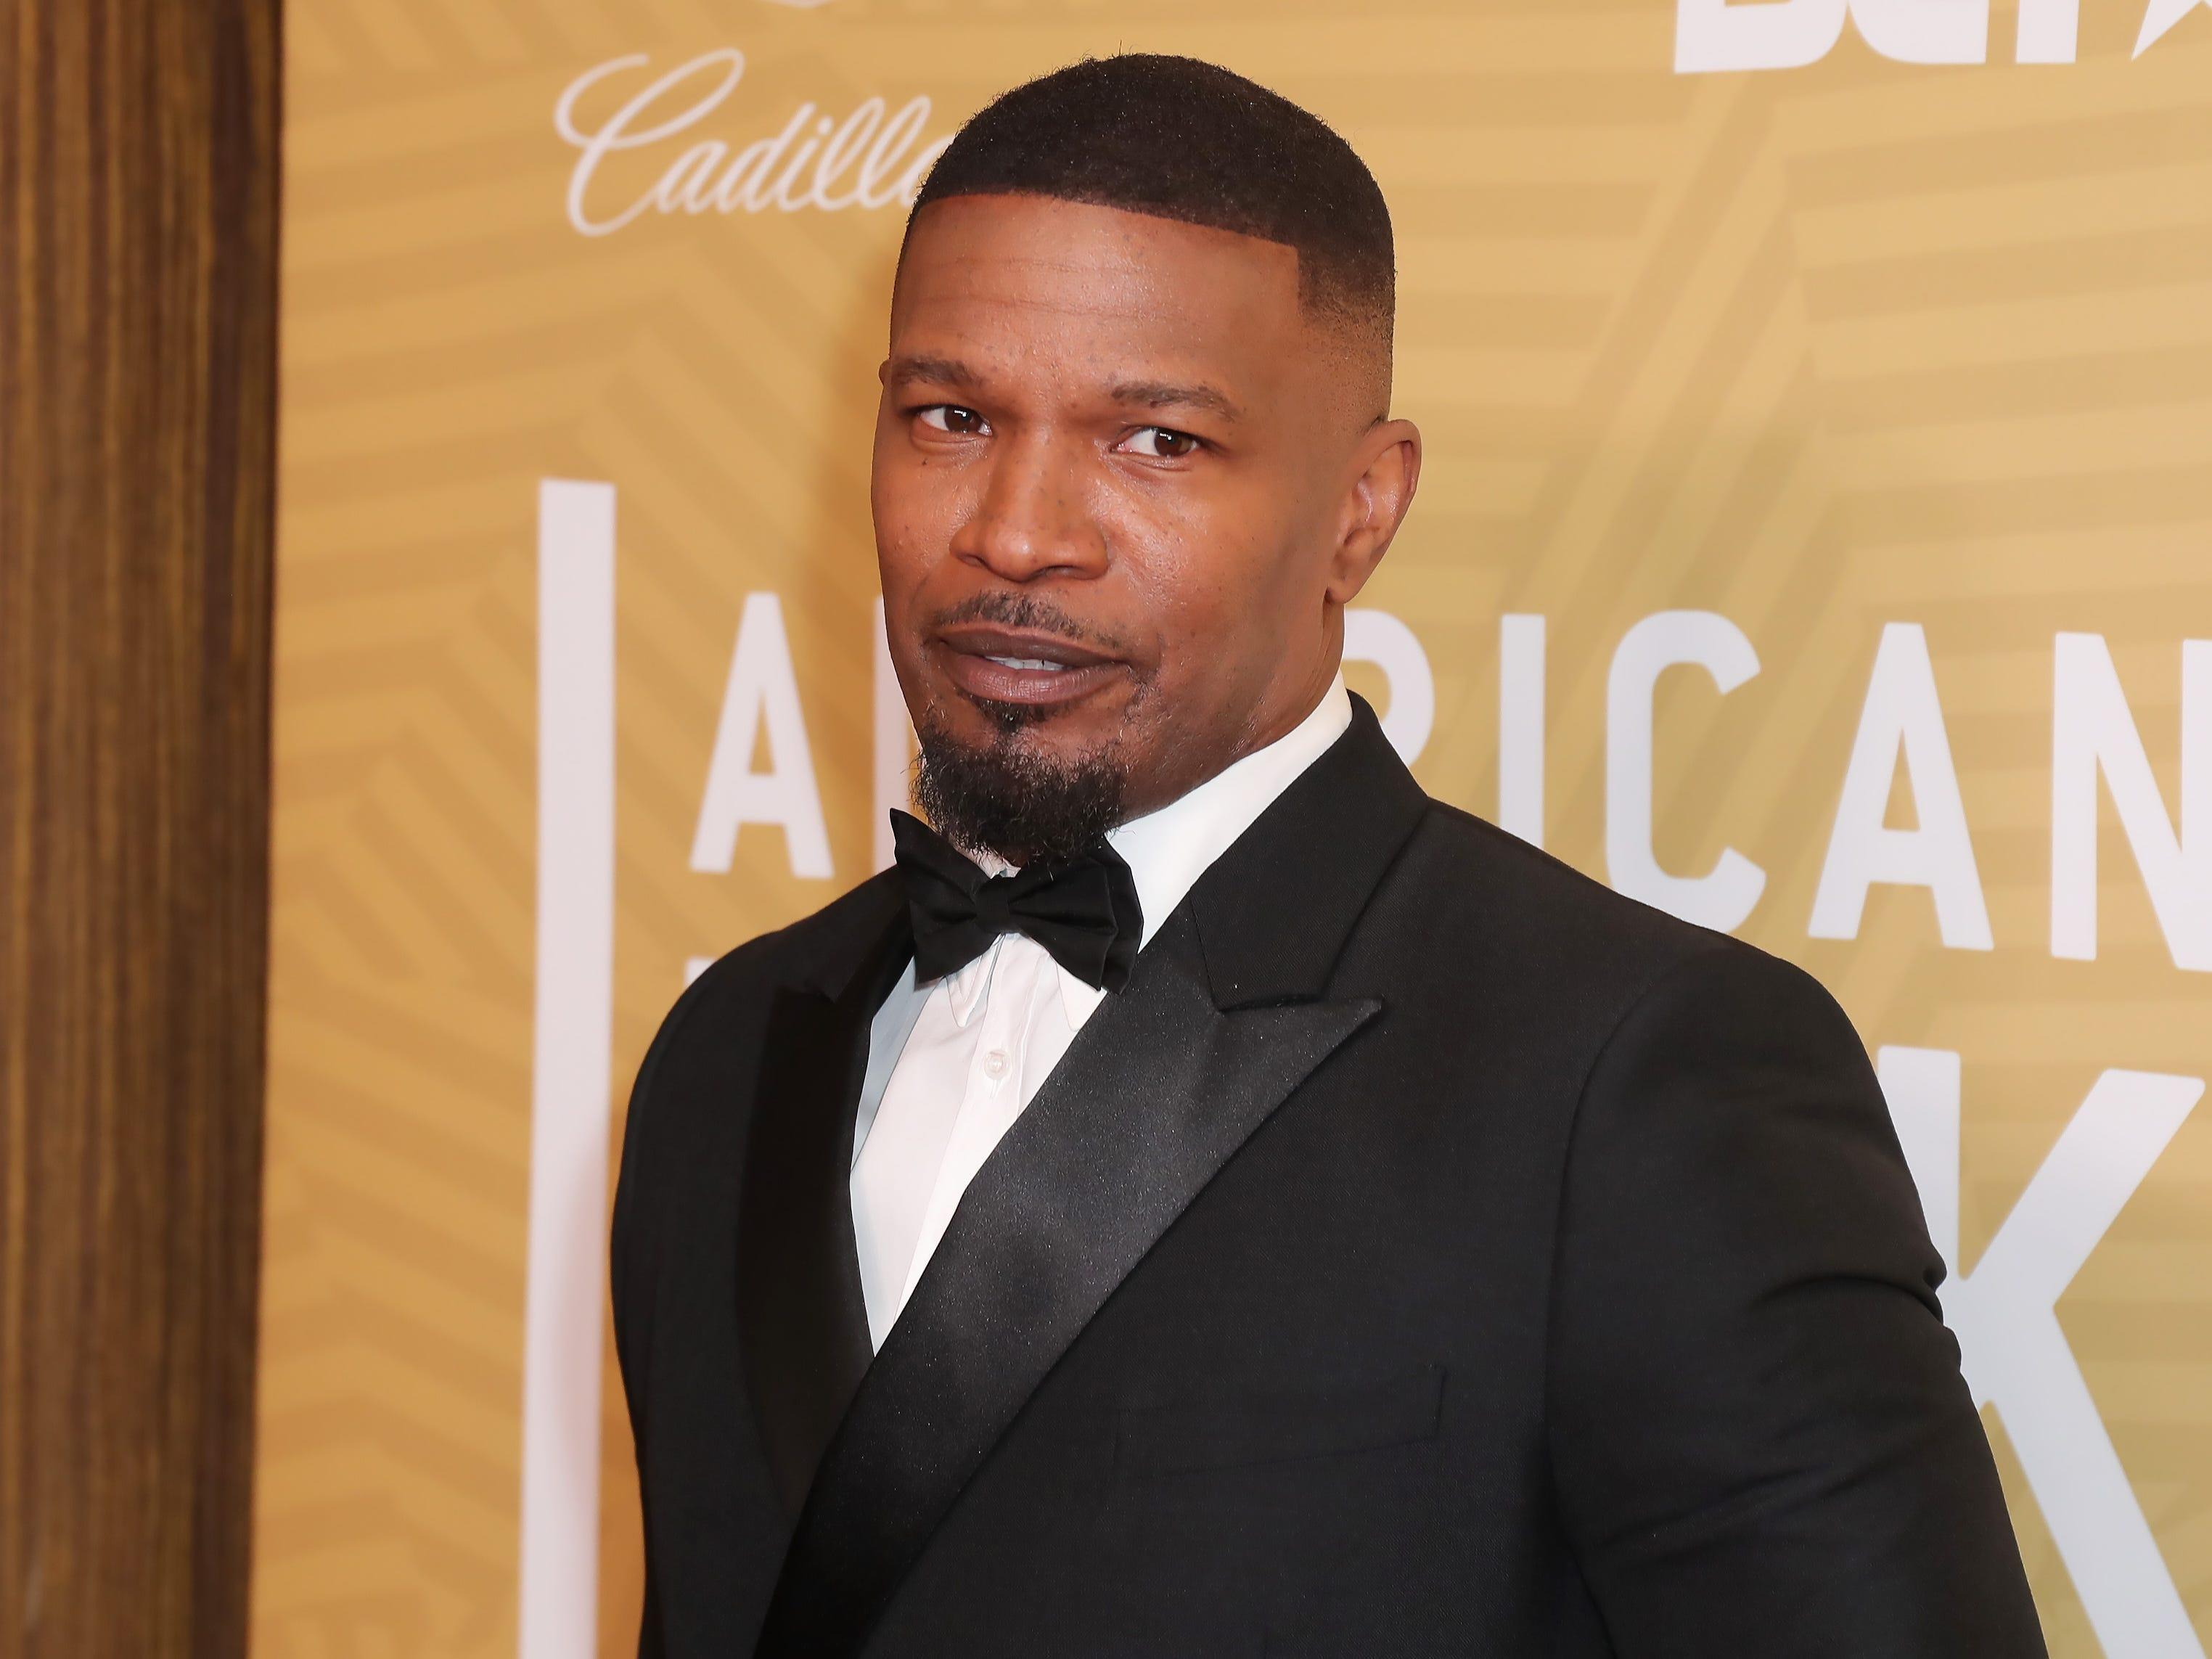 Jamie Foxx doesn't have a personal trainer or lift weights - he swears by doing pull-ups to stay fit and toned